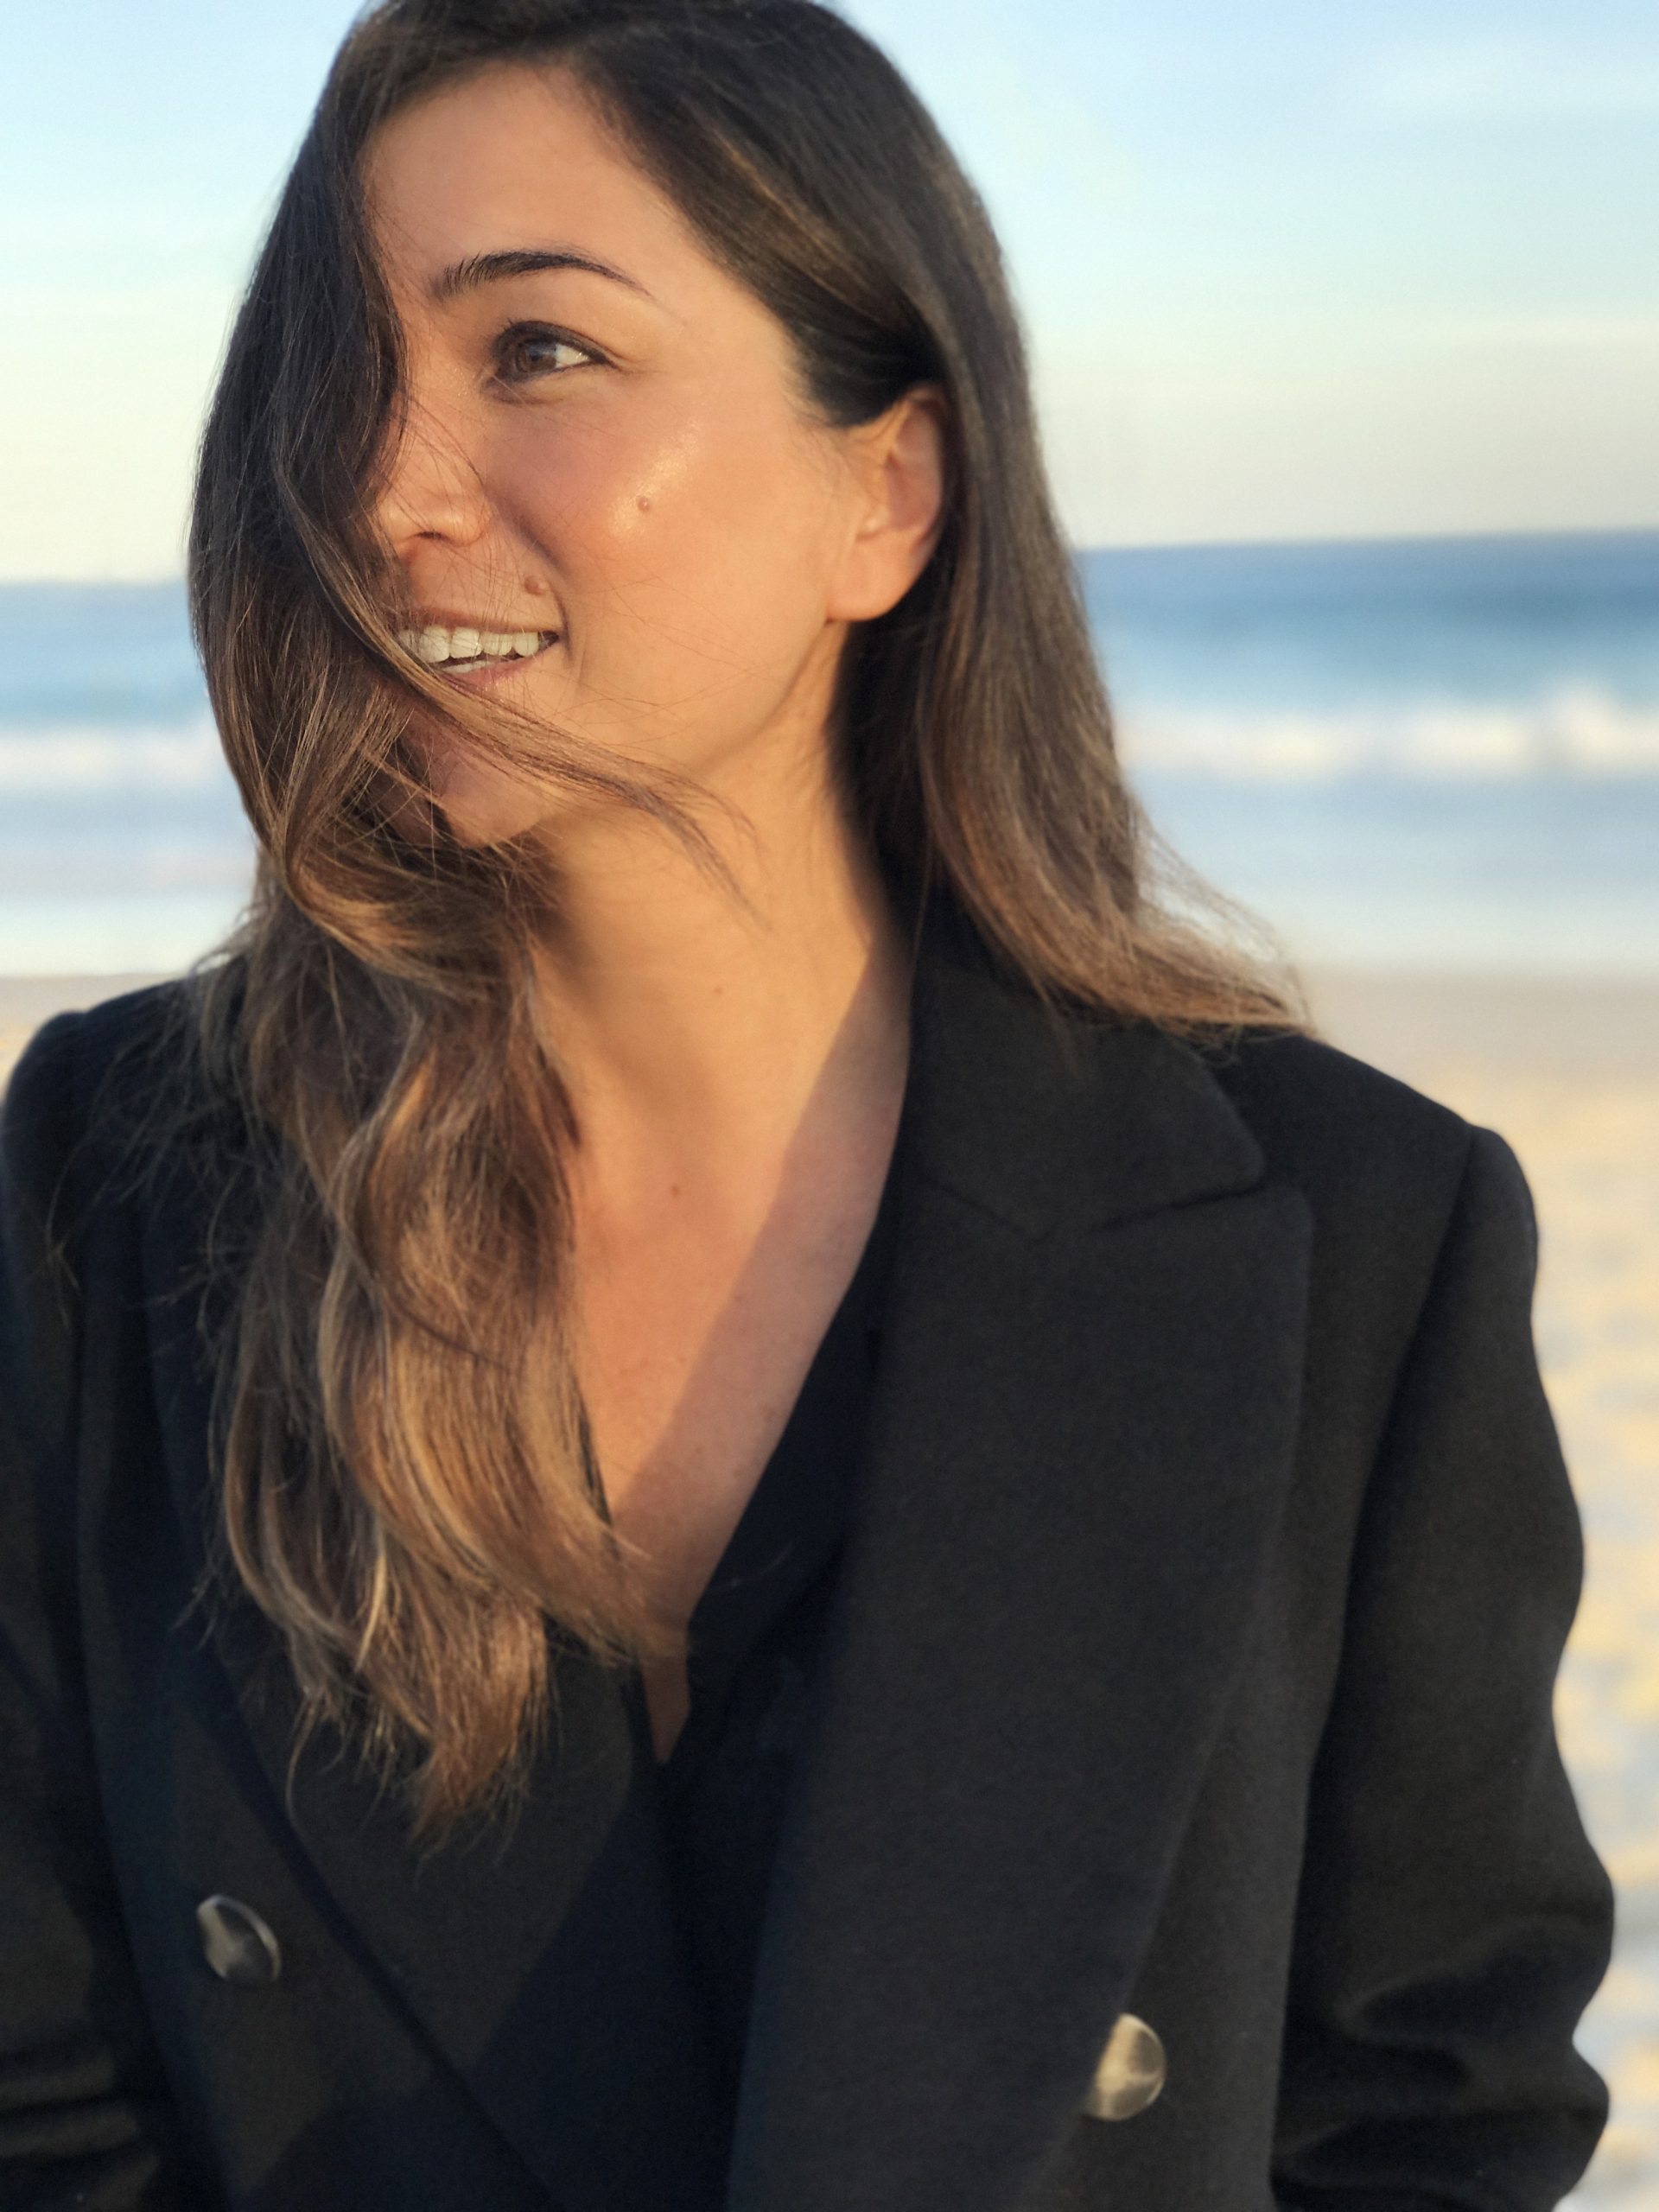 Justine Cullen on Magazines, Motherhood & Not Having It All – Episode 52 of The Grace Tales Podcast